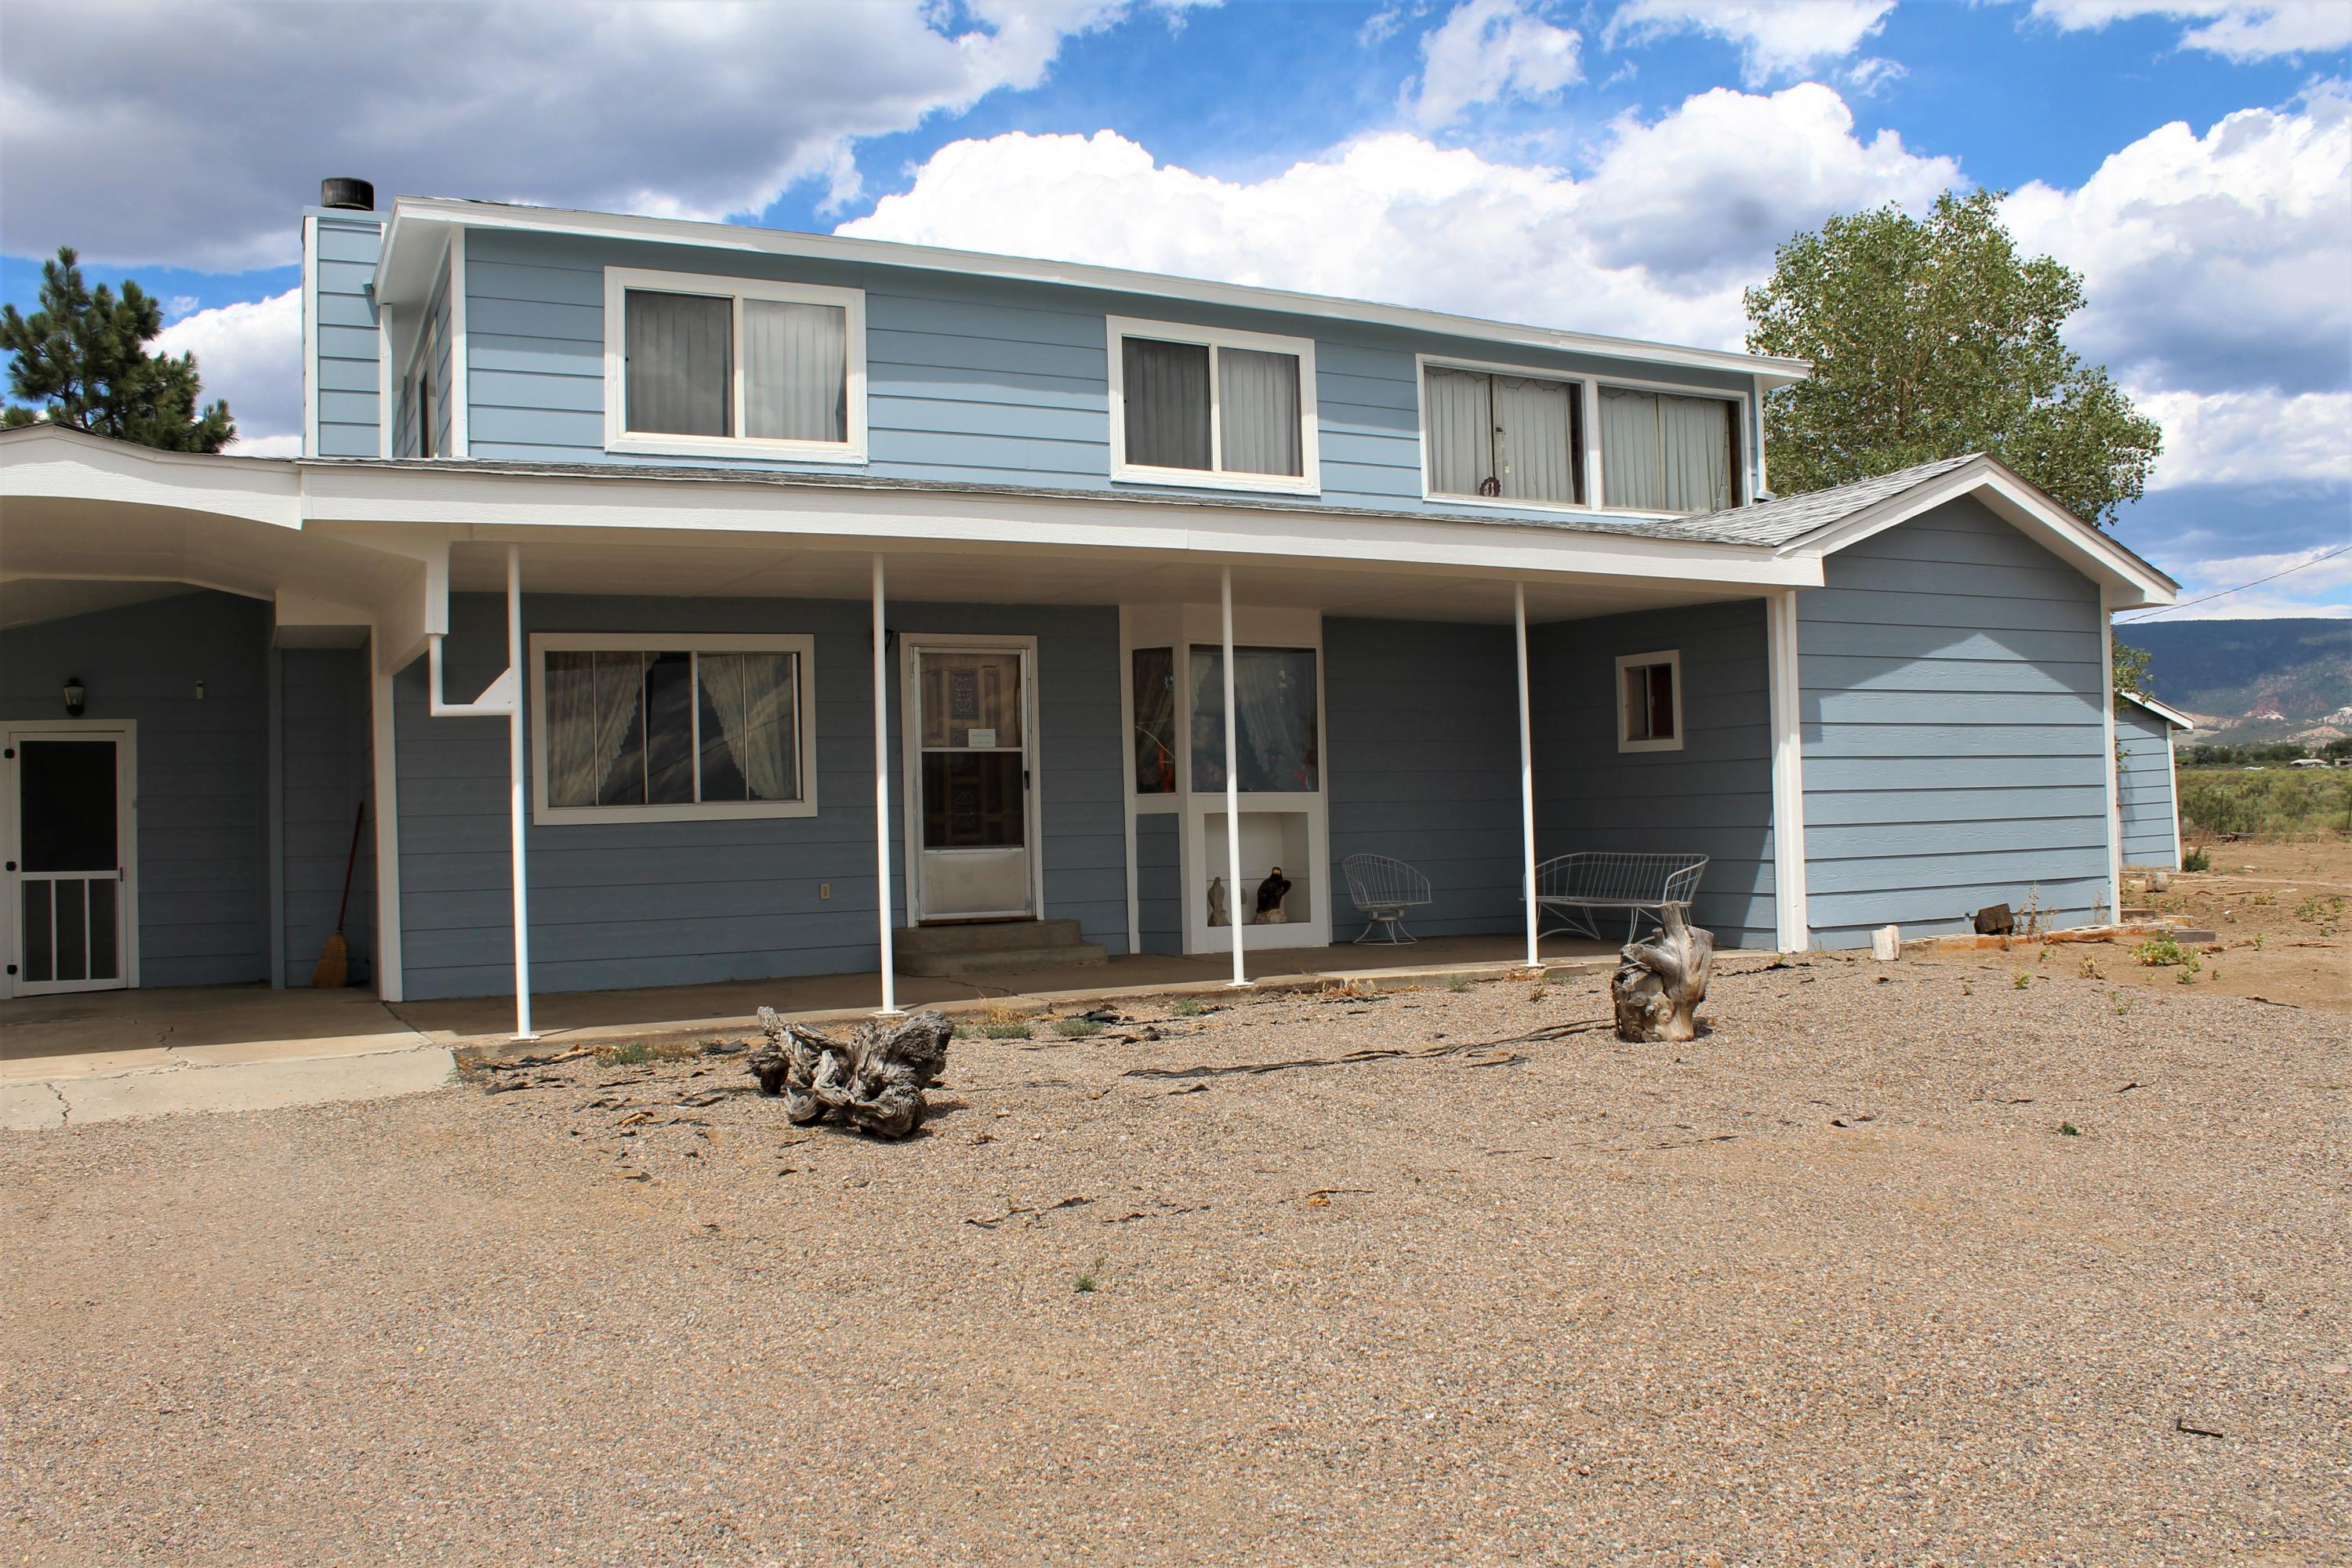 53 NM-197 Property Photo - Cuba, NM real estate listing